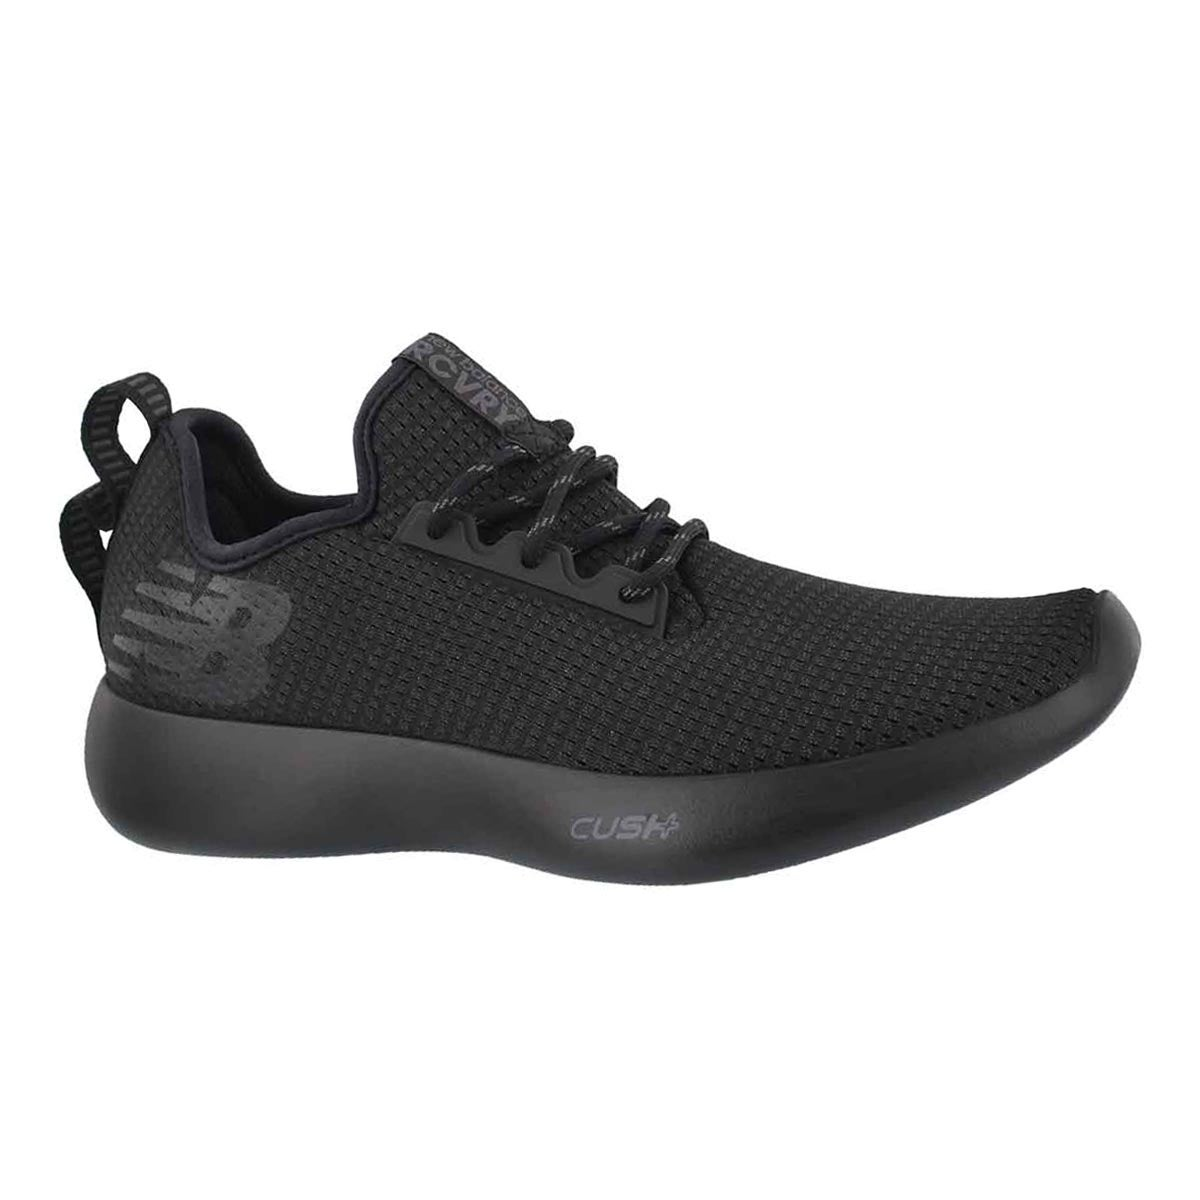 Men's RECOVERY black/black lace up sneakers